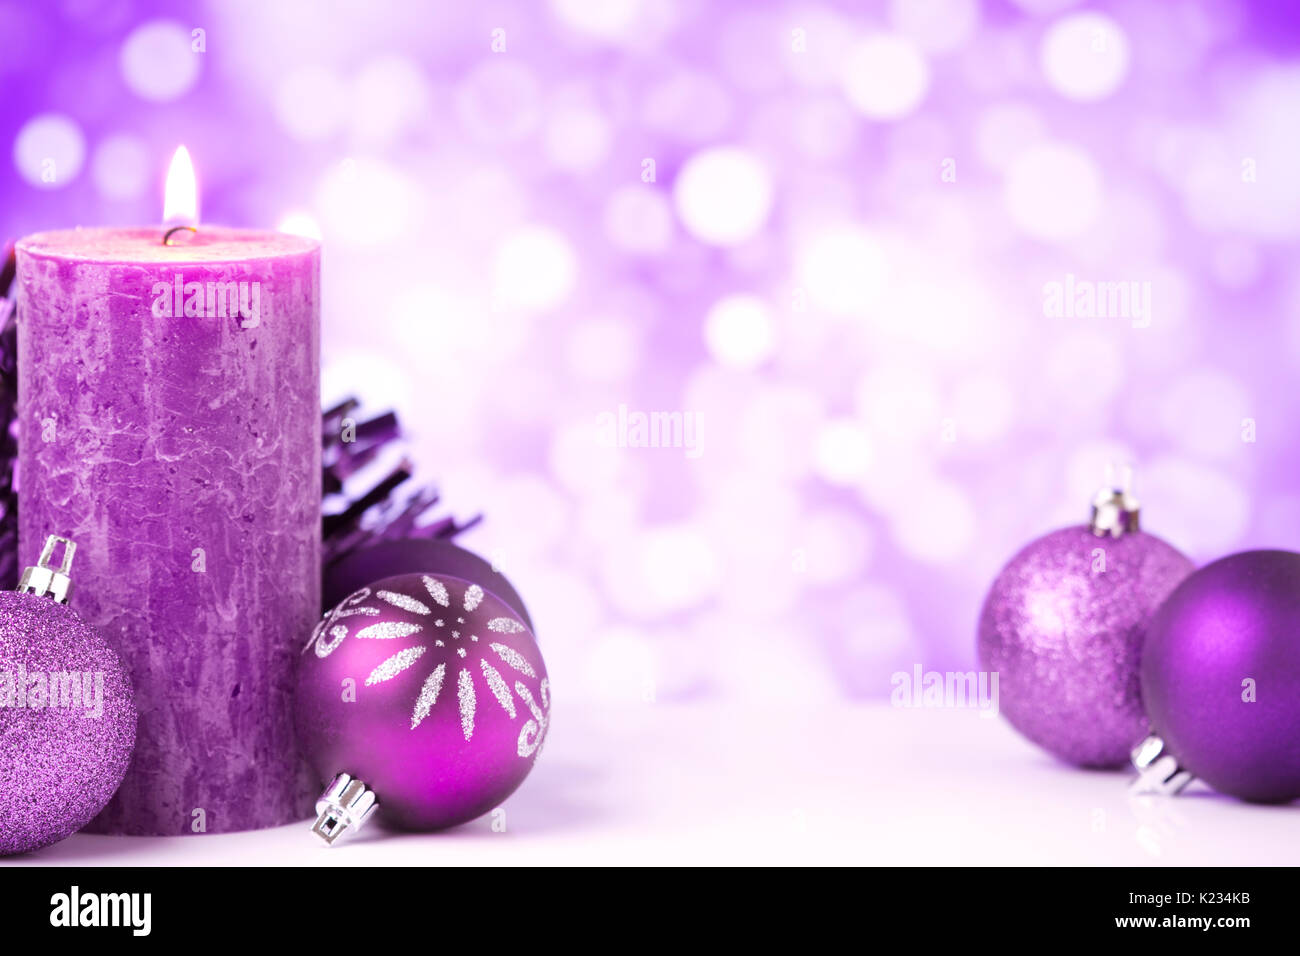 purple and silver christmas baubles and a candle in front of defocused purple and white lights